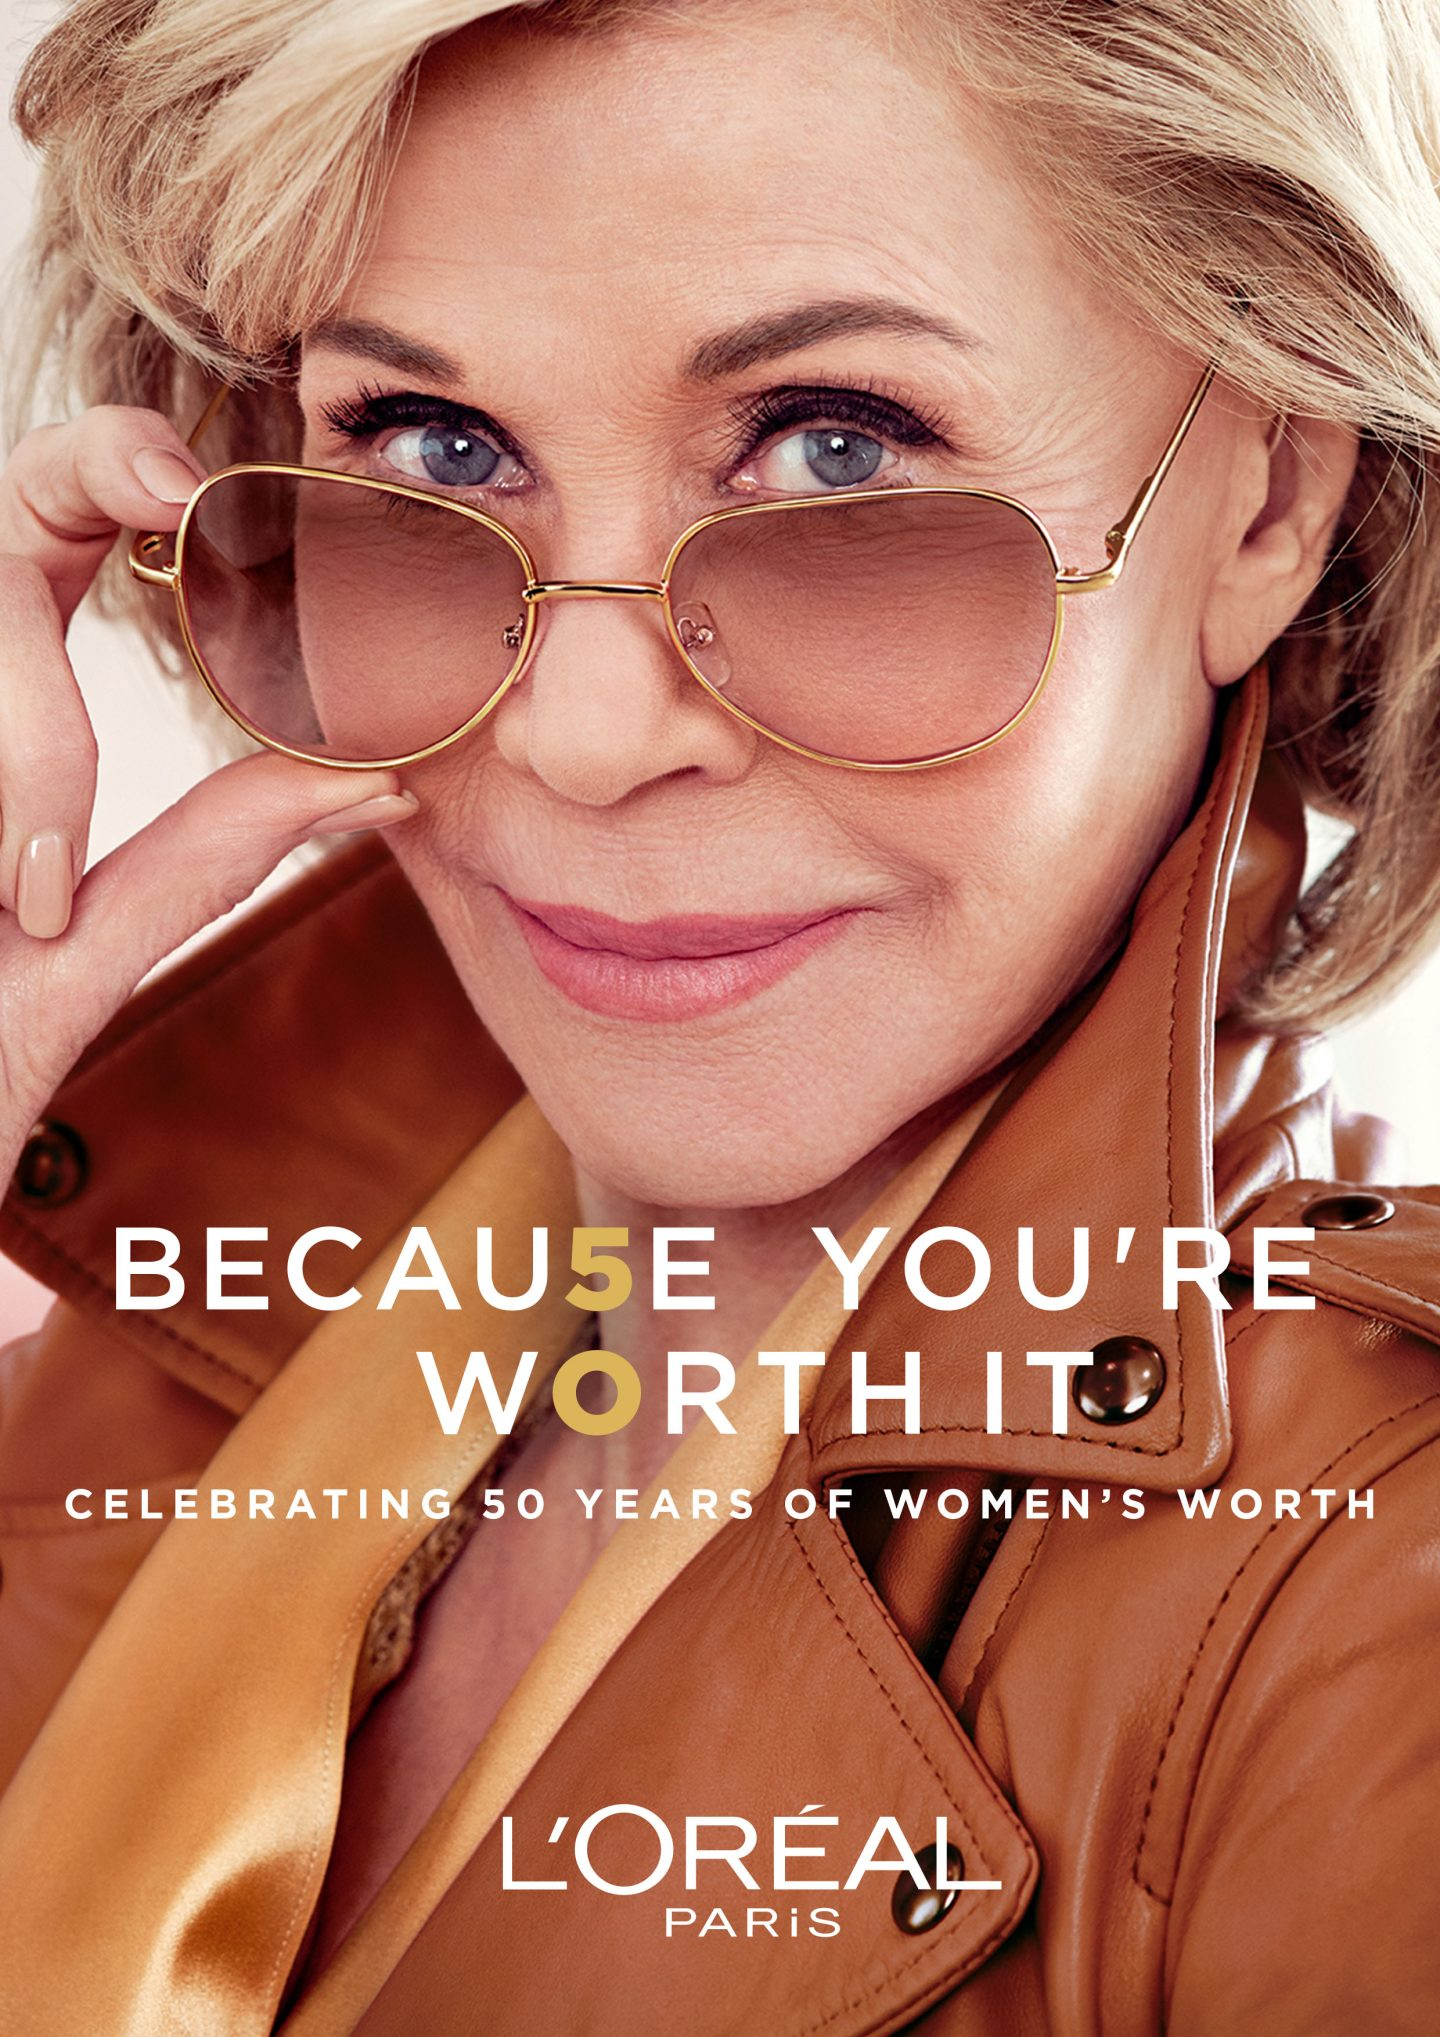 Jane Fonda wearing sunglasses and a light brown coat in a L'Oreal Paris advert